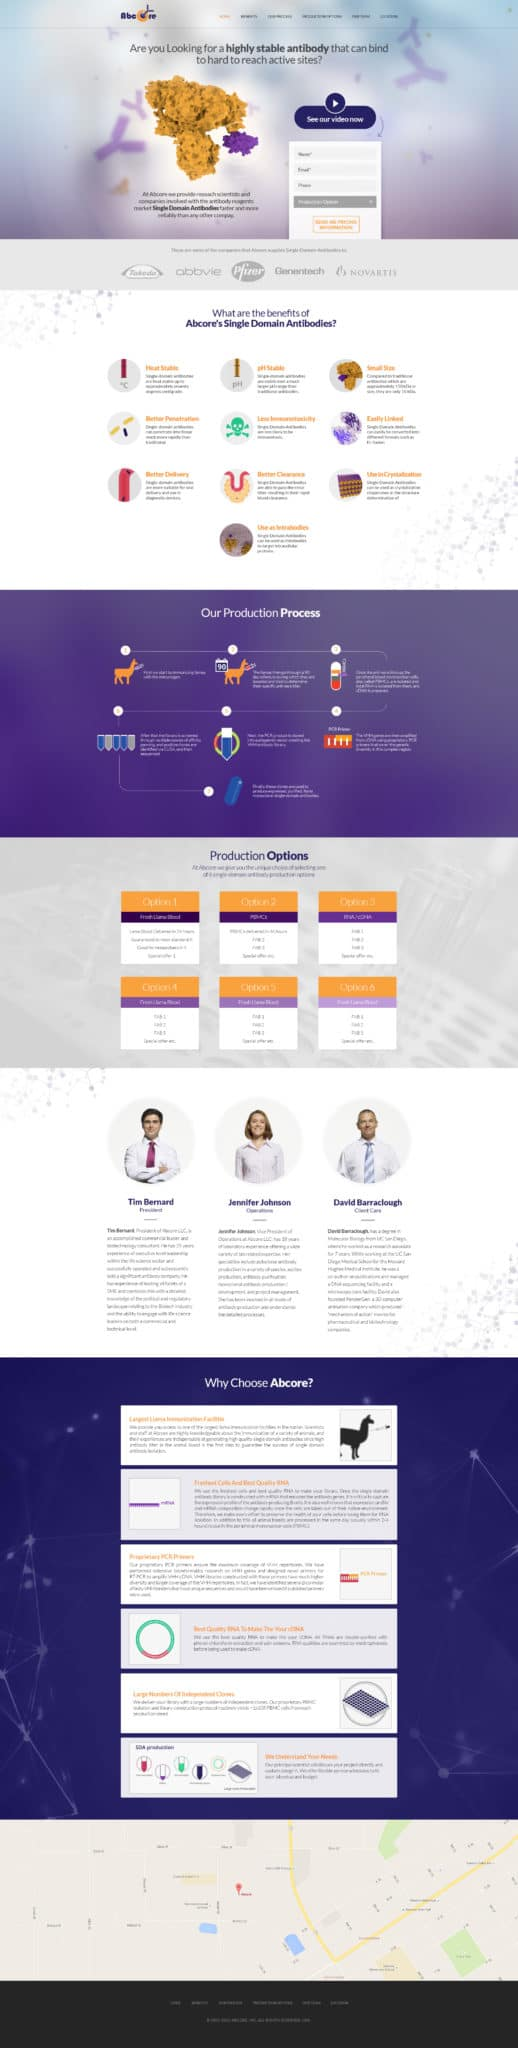 Abcore Landing Page